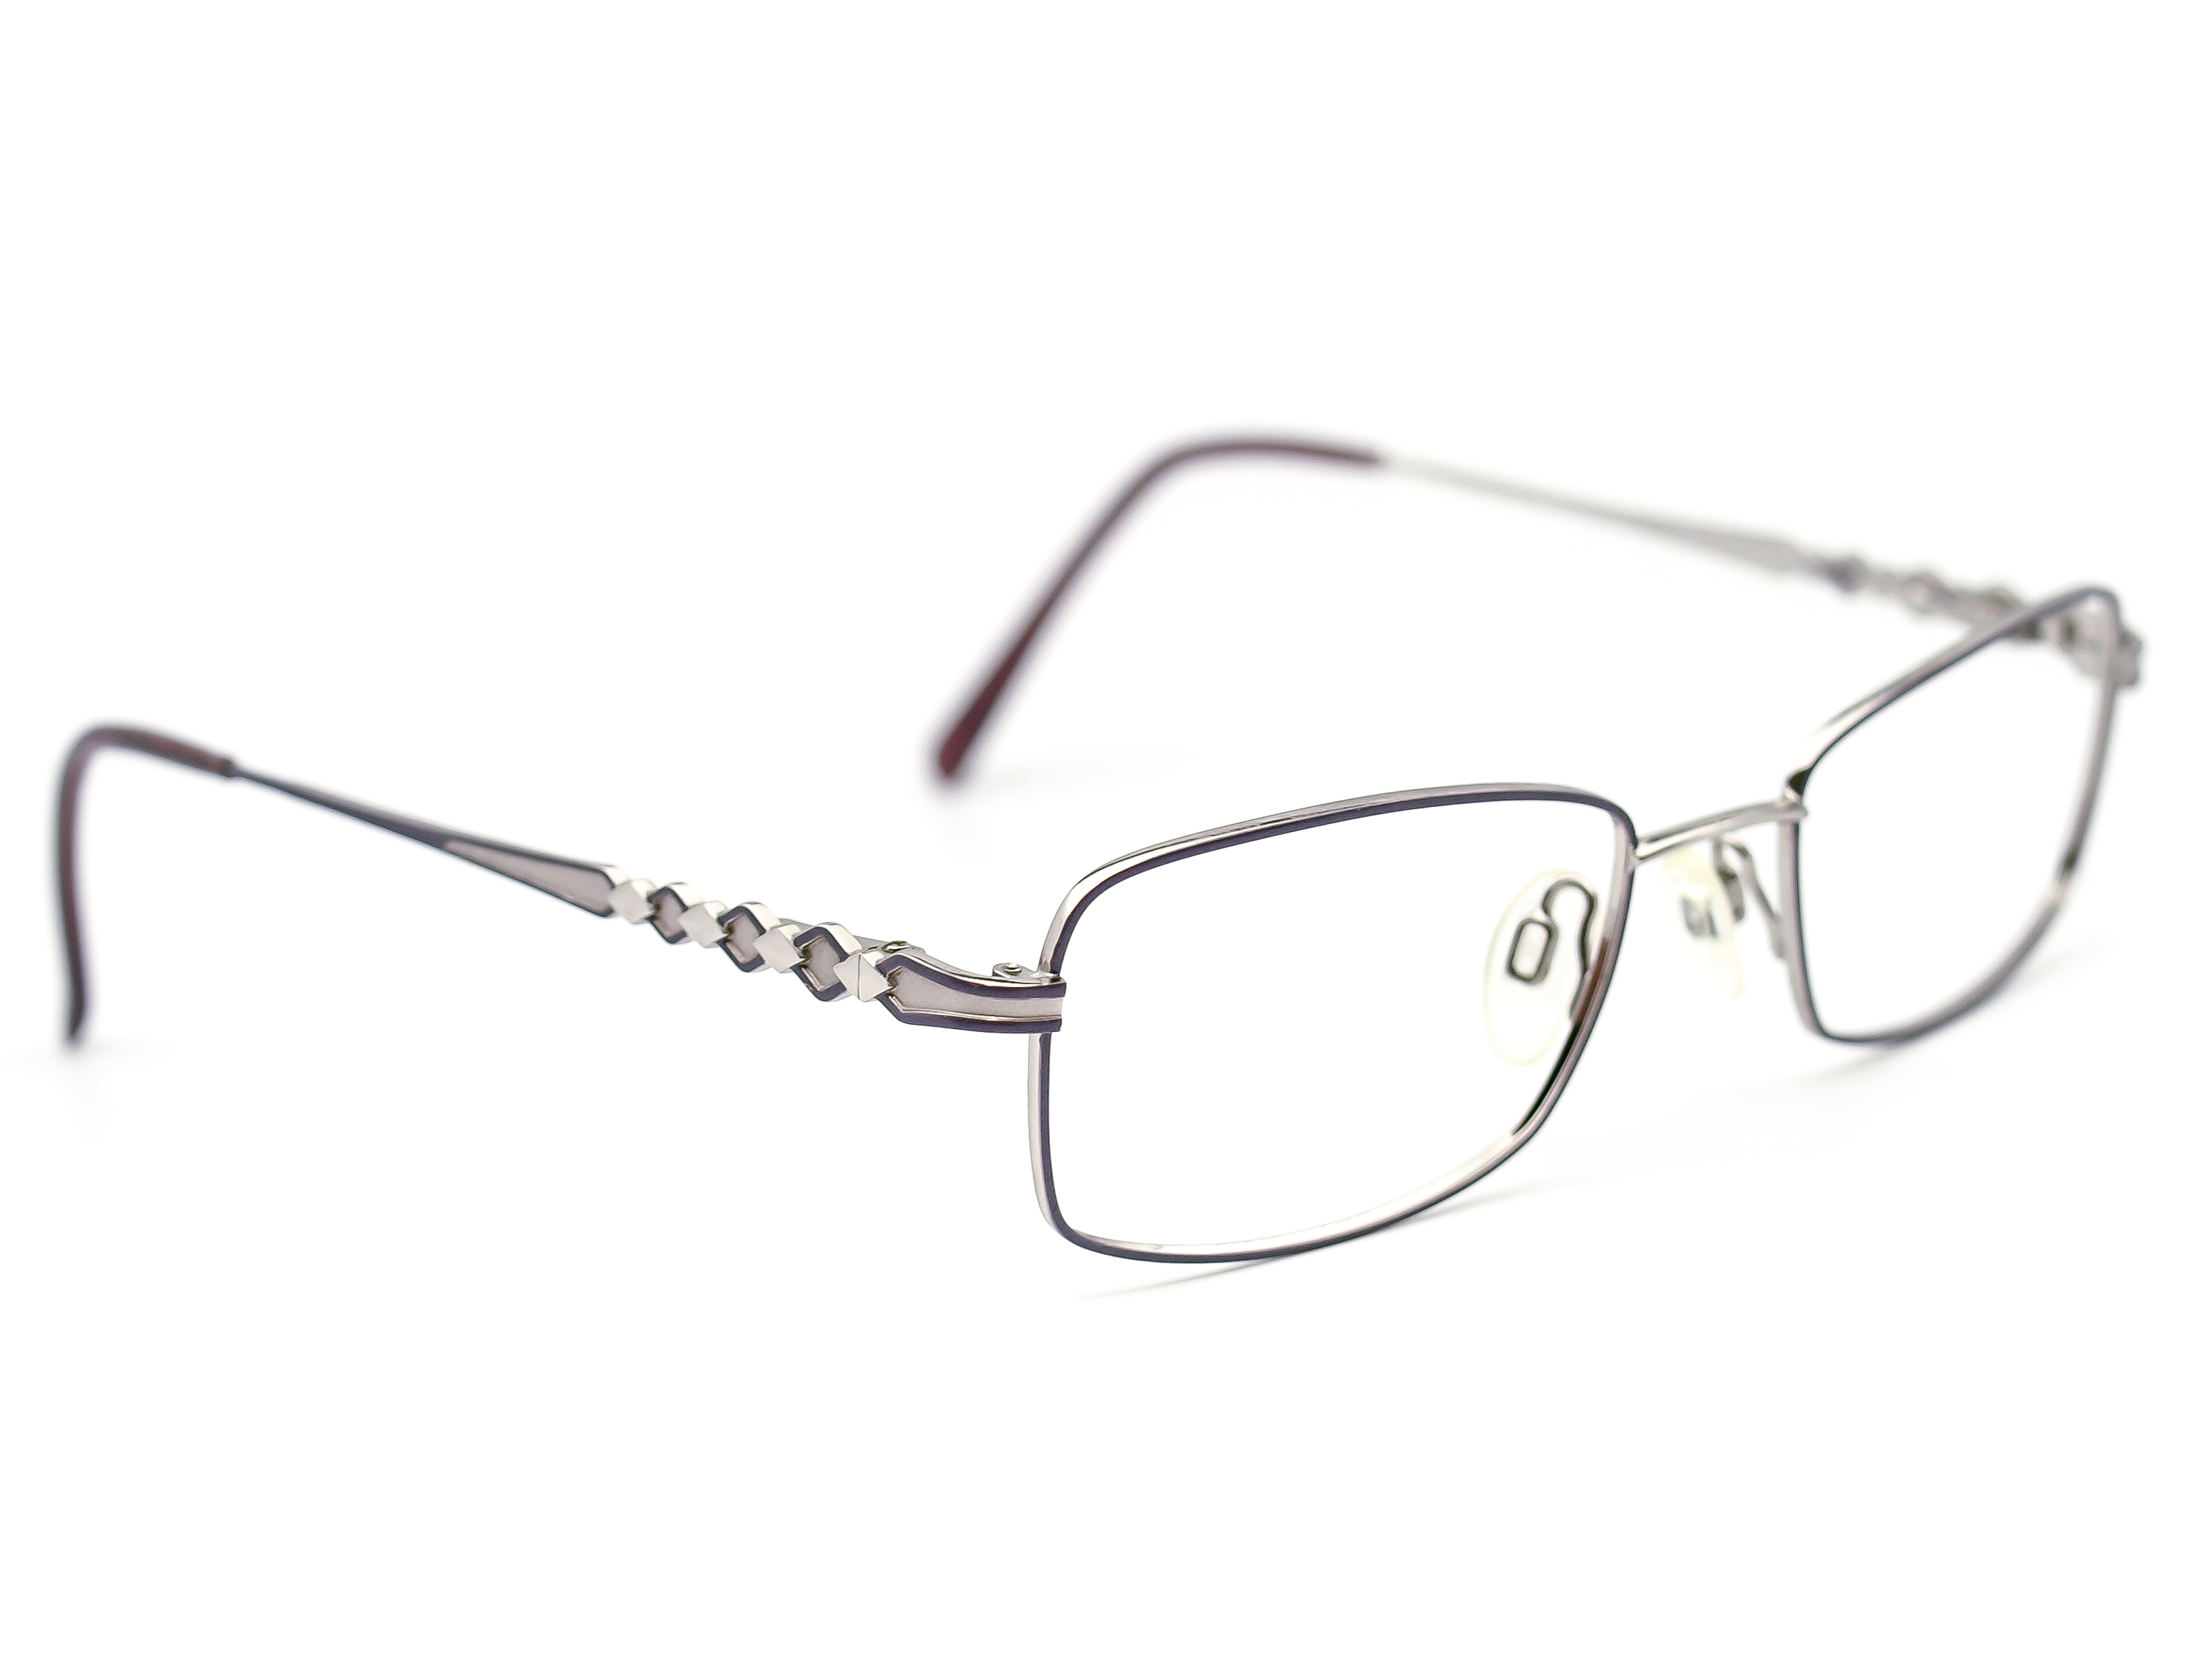 Charmant Aristar AR16314 Color-577 Eyeglasses